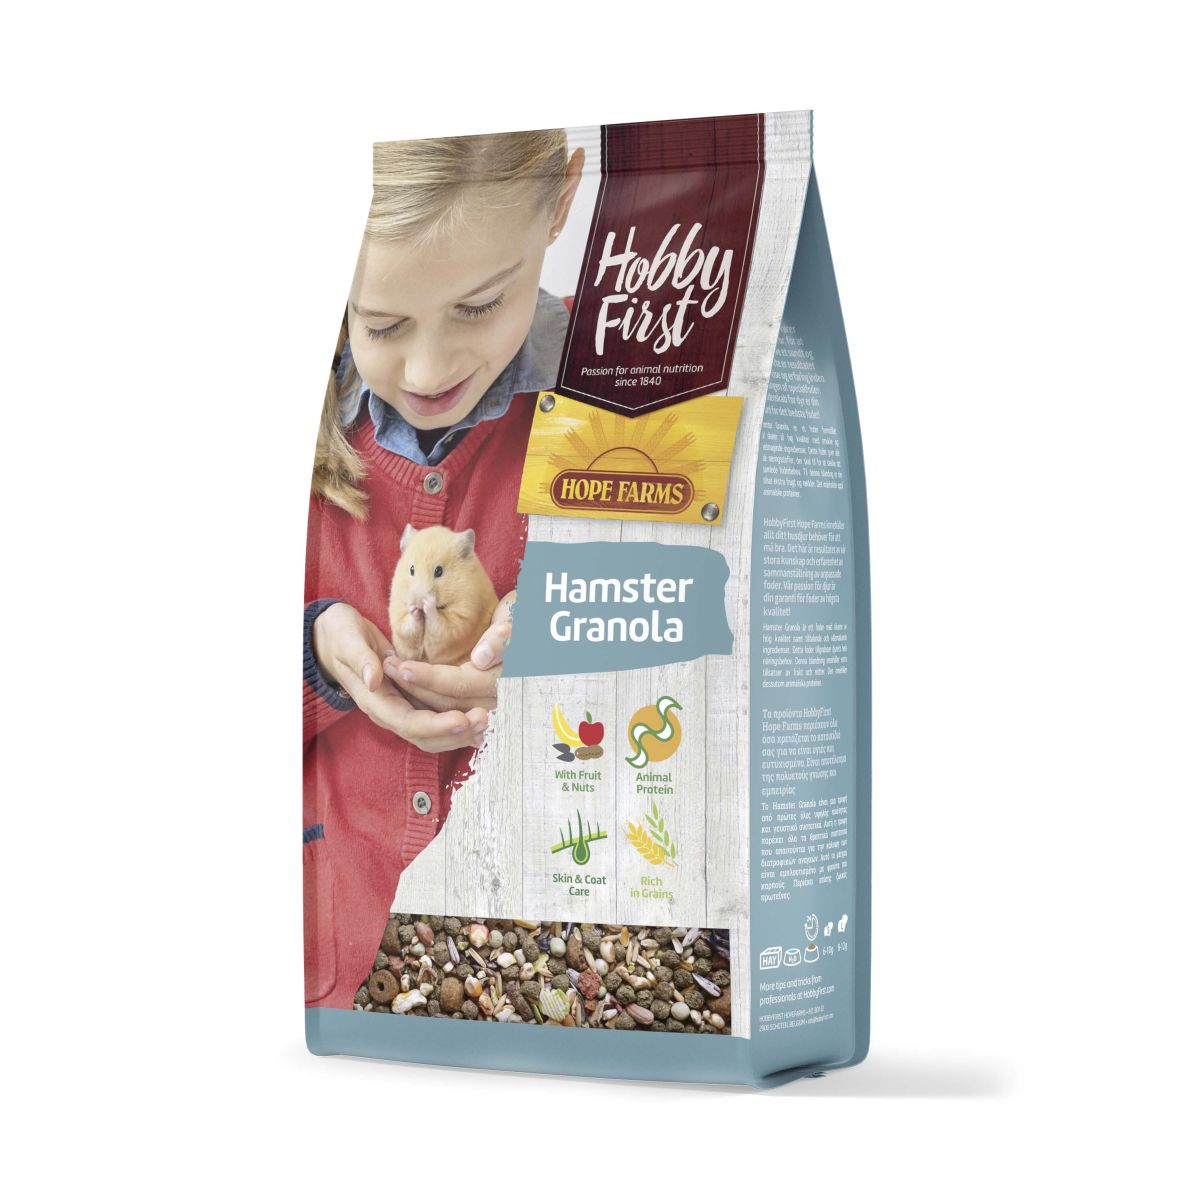 Hope Farms Hamster Granola